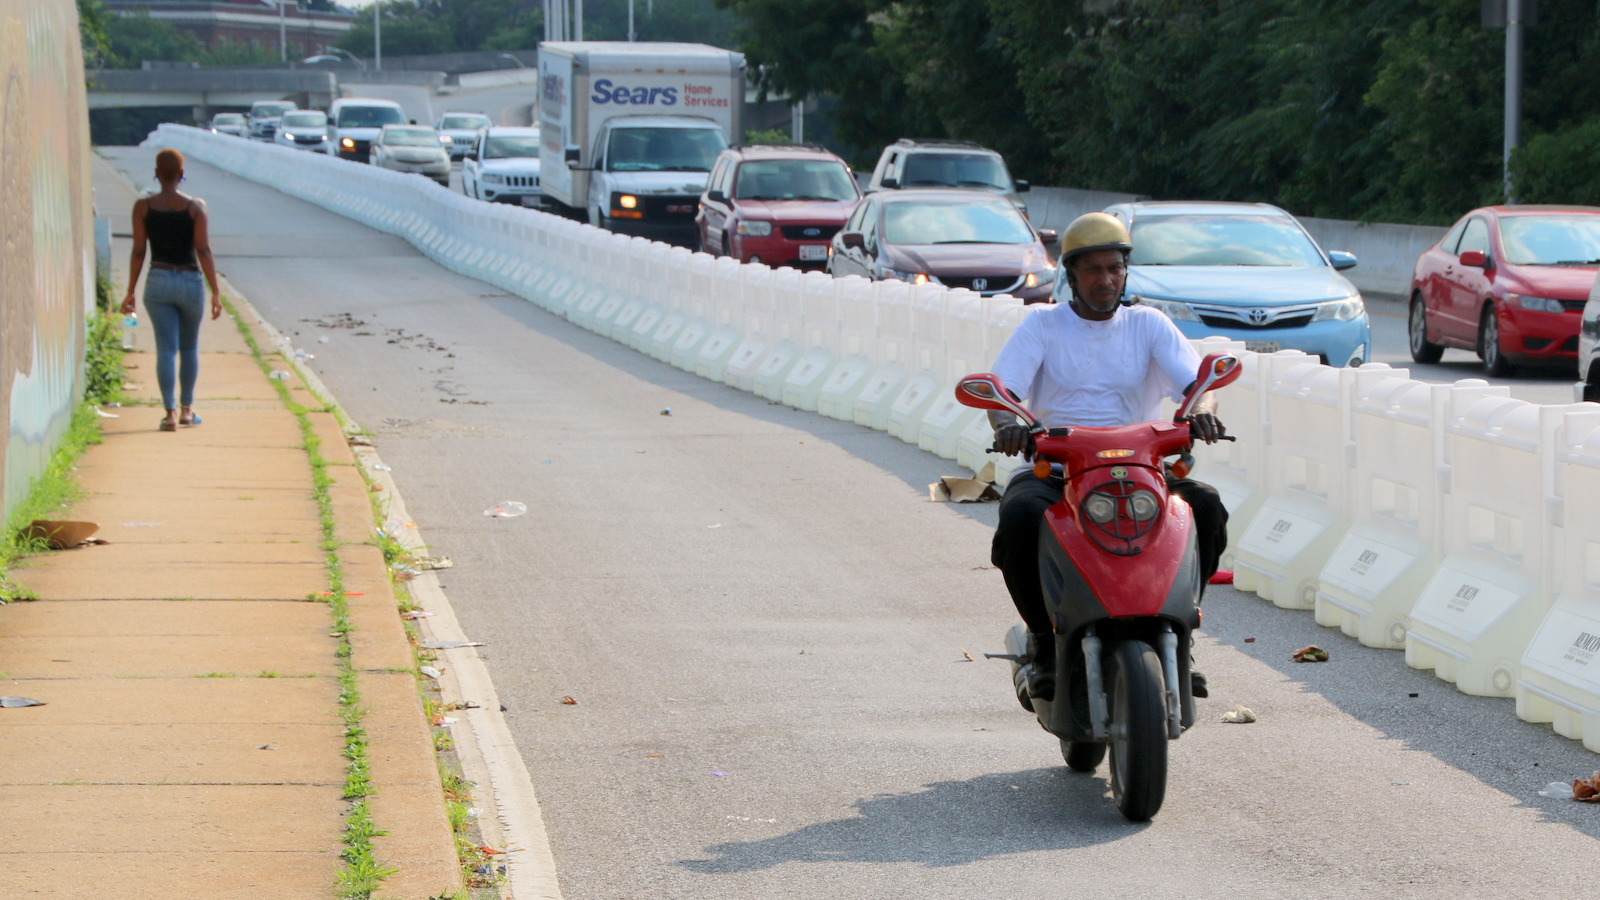 A pedestrian and a motorcycle rider in the new Big Jump lane. (Fern Shen)